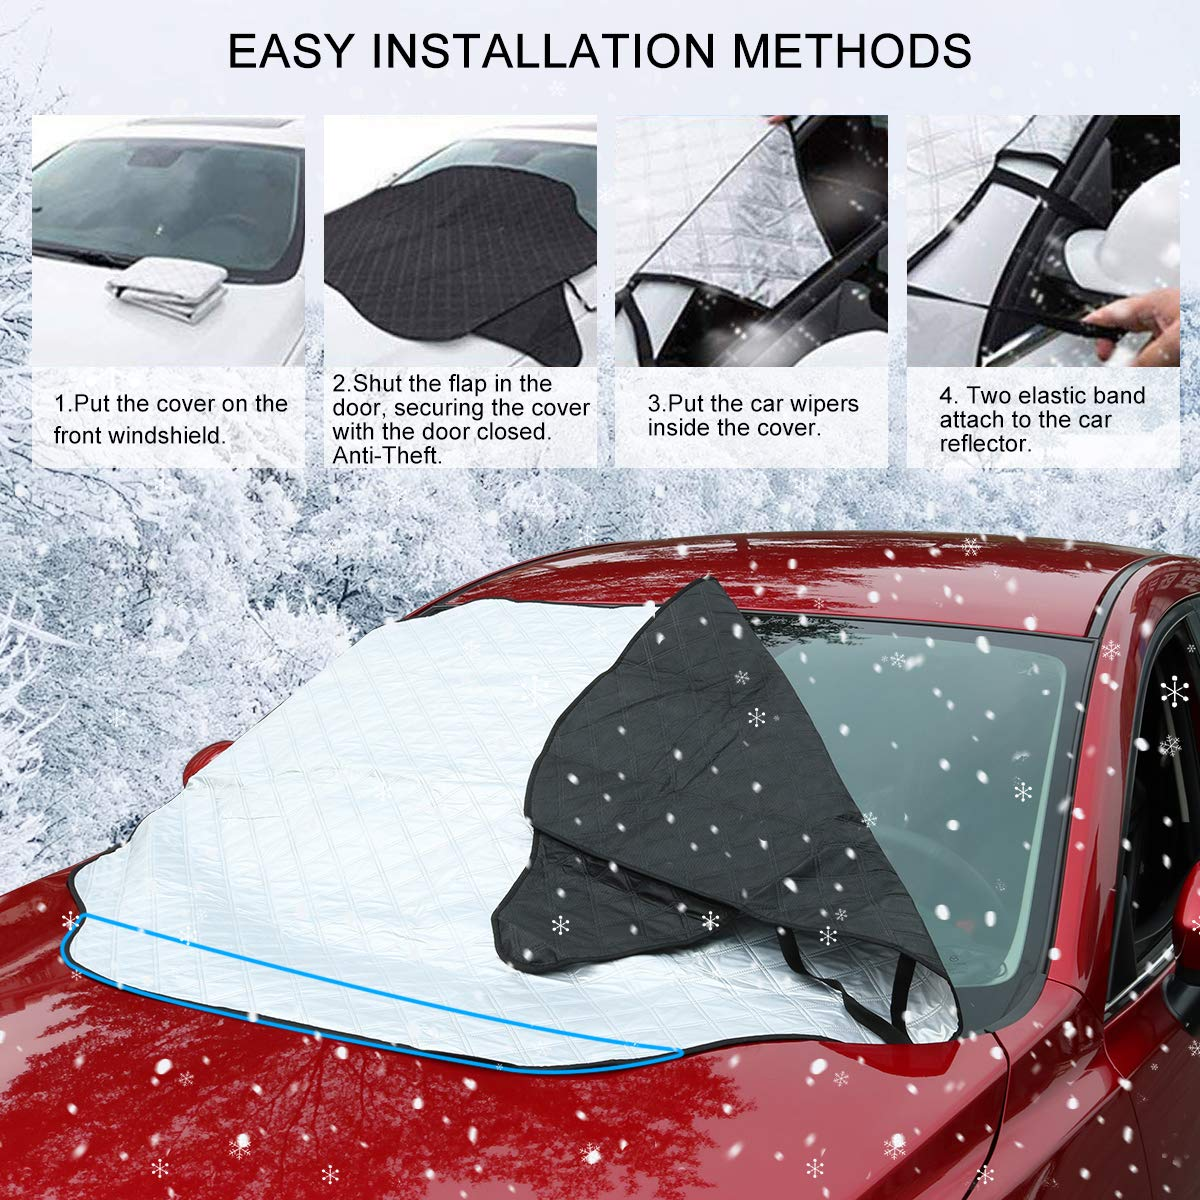 GAMURRY Windshield Cover Windshield Snow Ice Frost Guard Cover for Most Cars and SUVs with Magnetic Windshield Cover for Ice and Snow